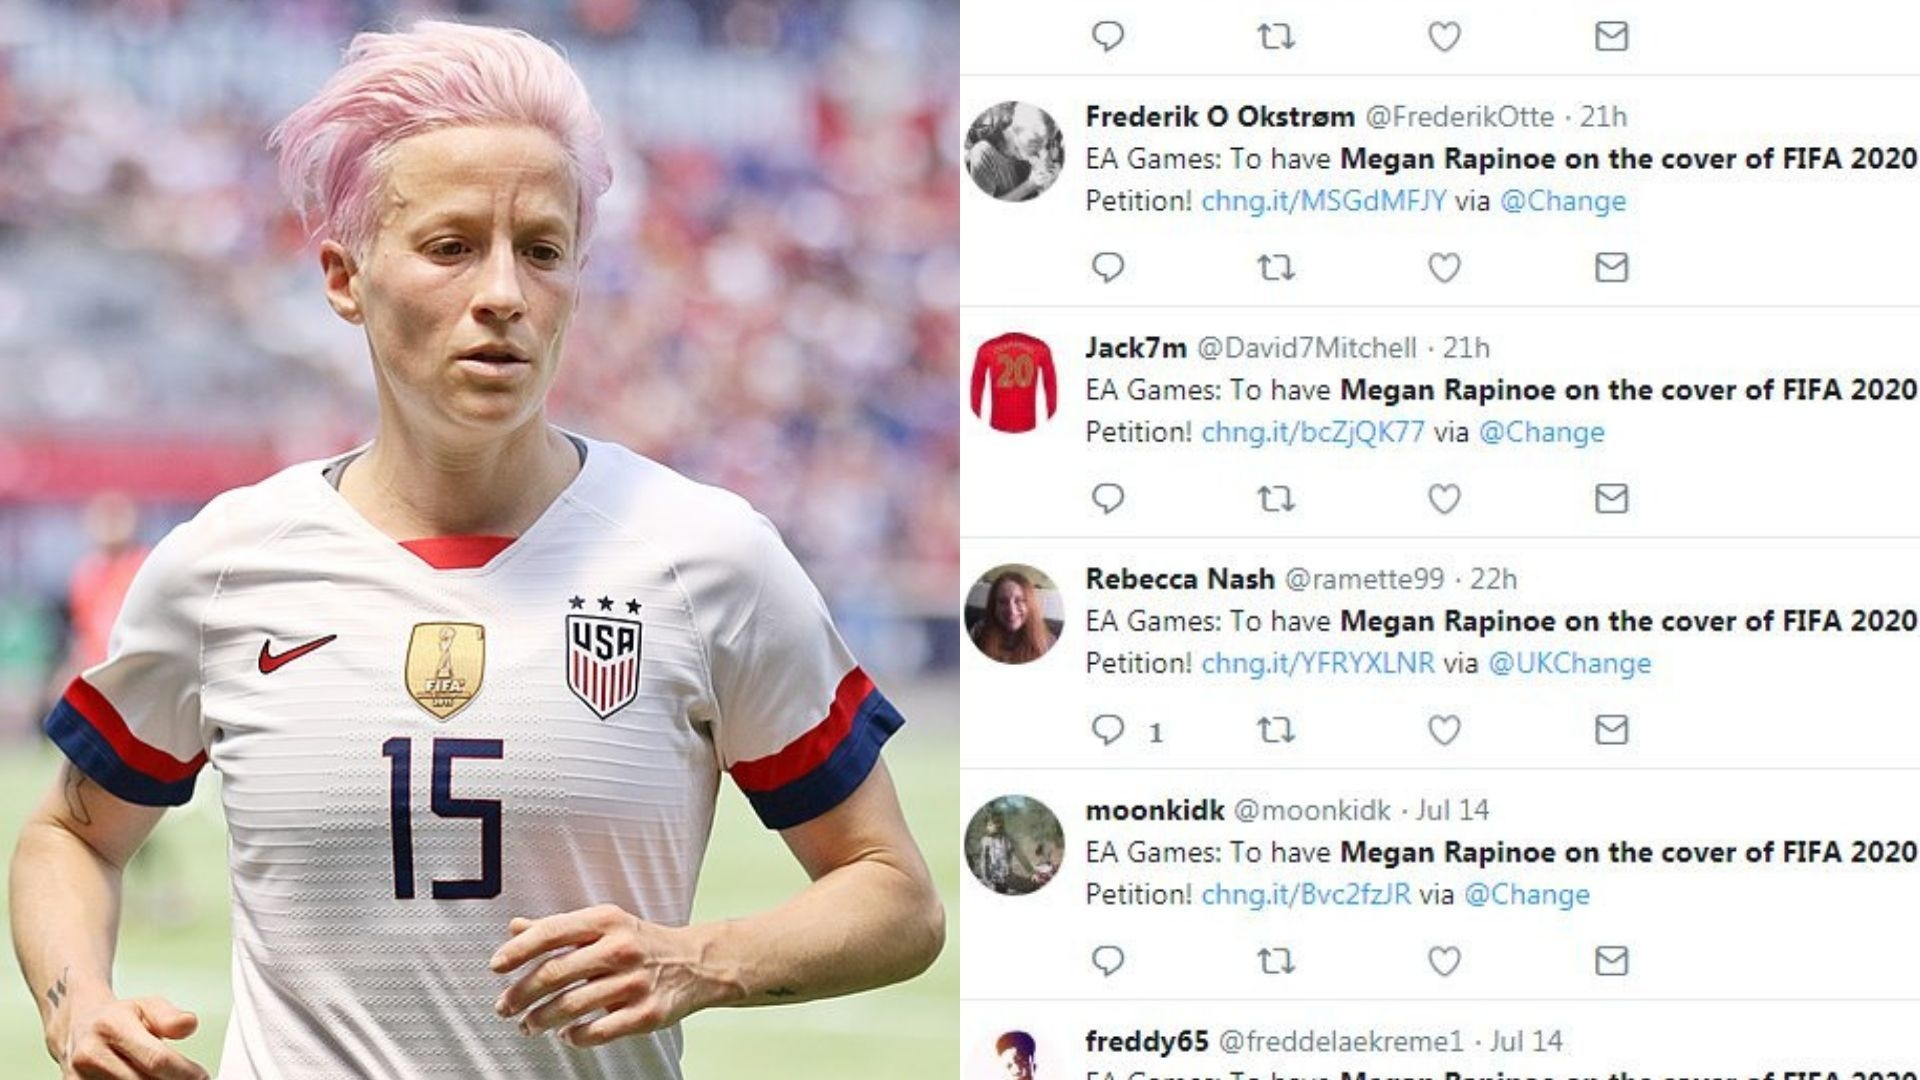 Megan Rapinoe on FIFA 2020 Cover? Petition Tries to Make It Happen